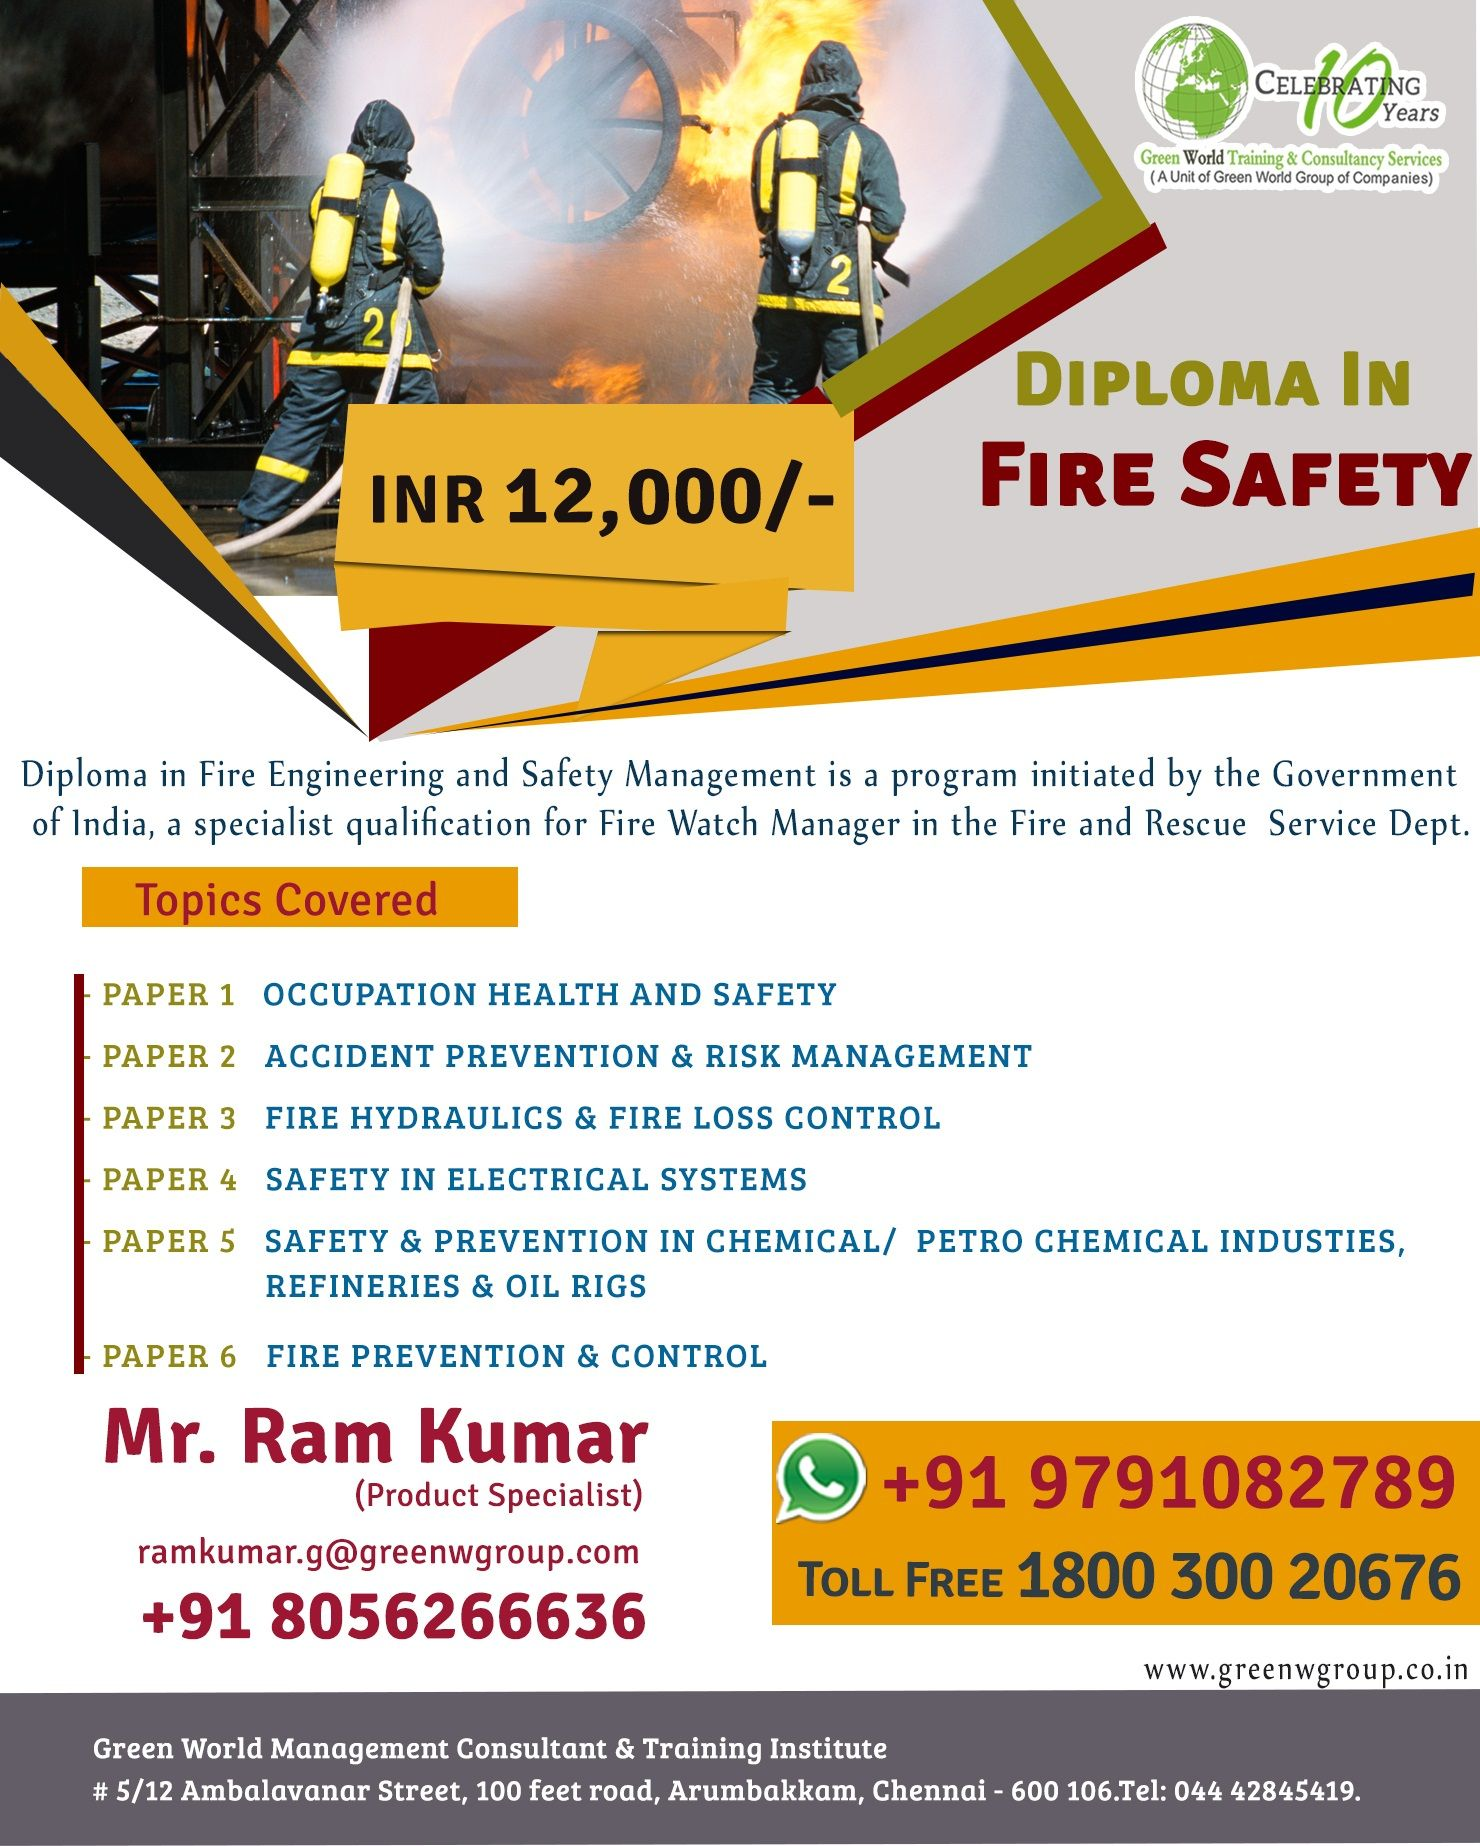 Pin by Greenworld saudi on Diploma in Fire and Safety